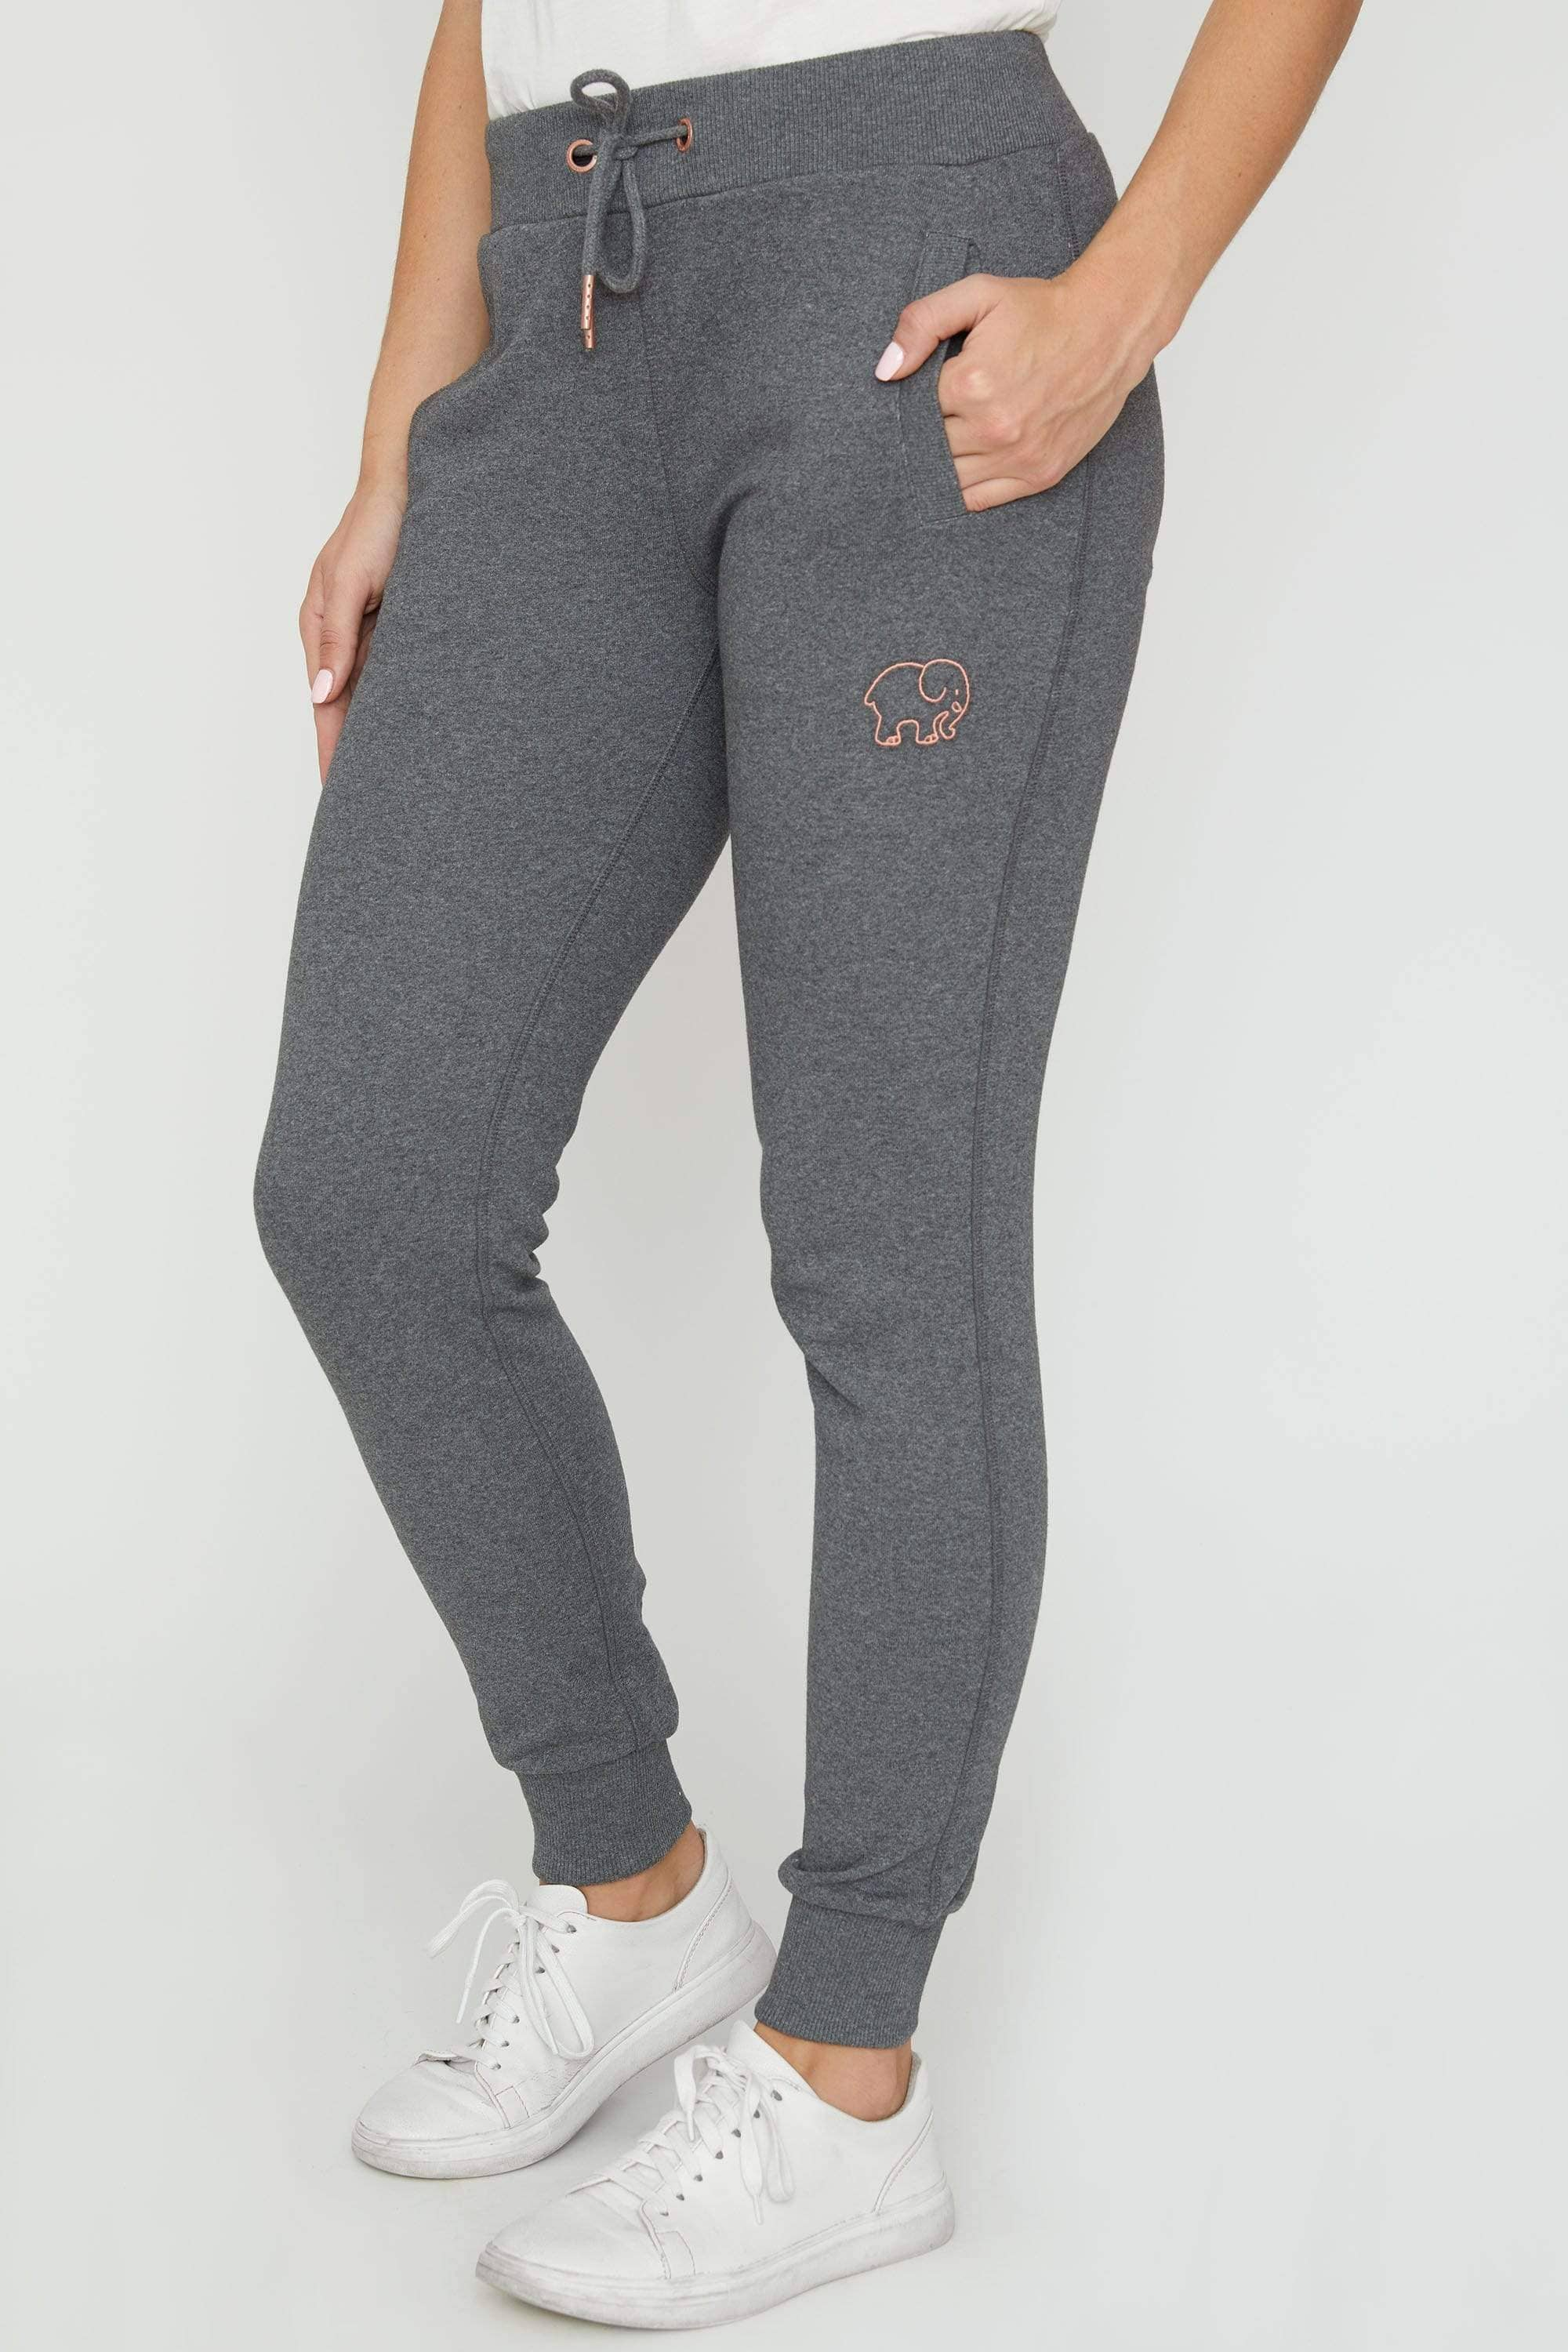 Grey Sierra Organic Jogger - Ivory Ella - Women's Bottoms